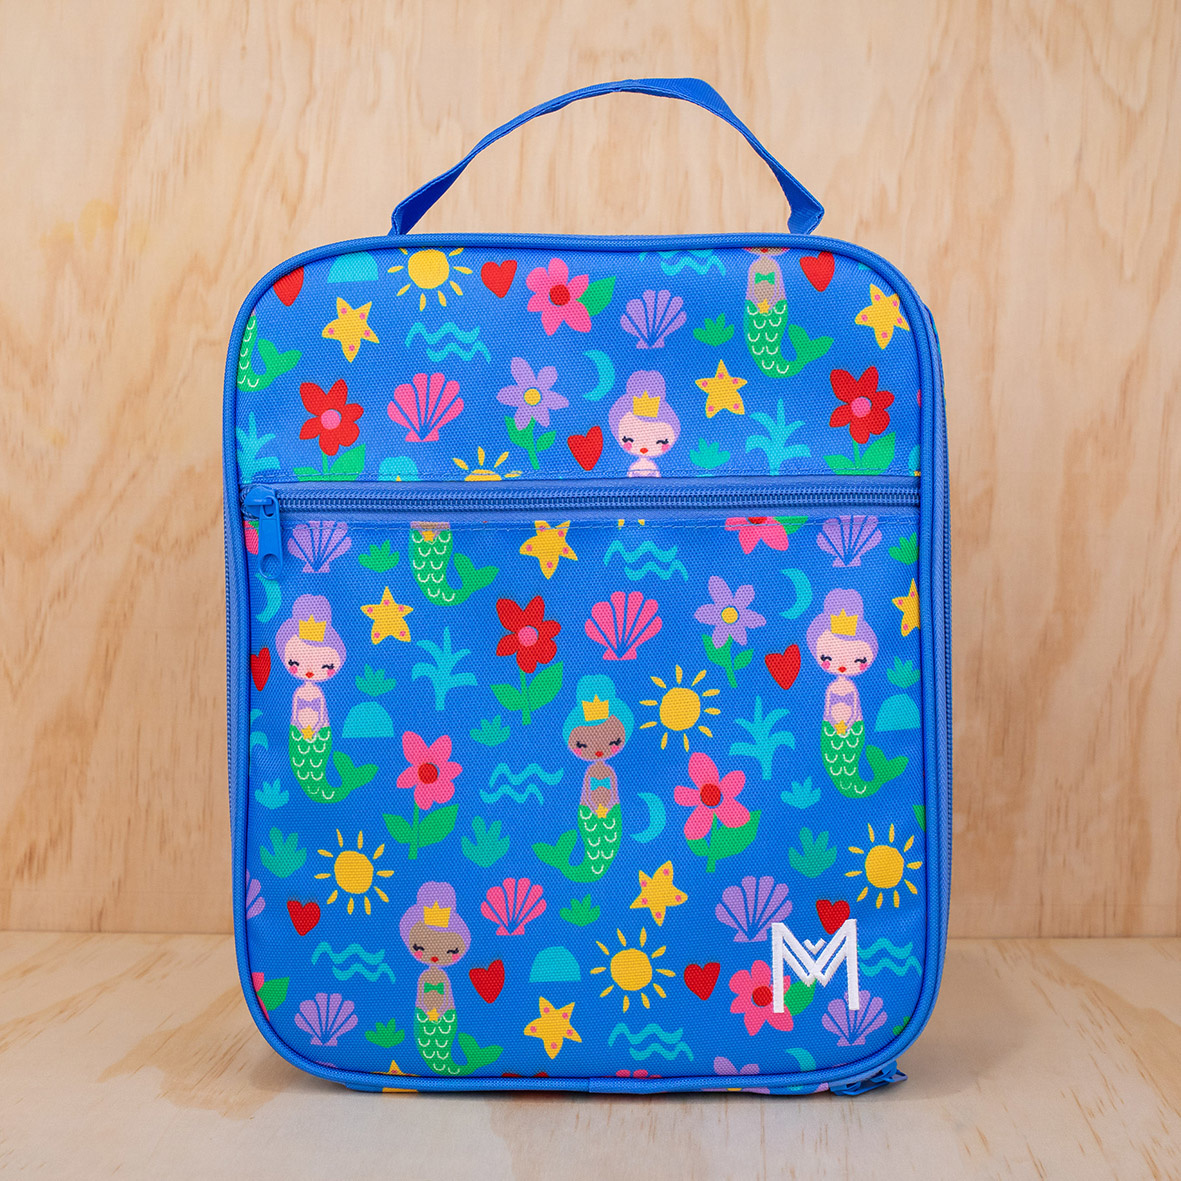 Montii insulated Lunch Bag - Mermaid V3-1